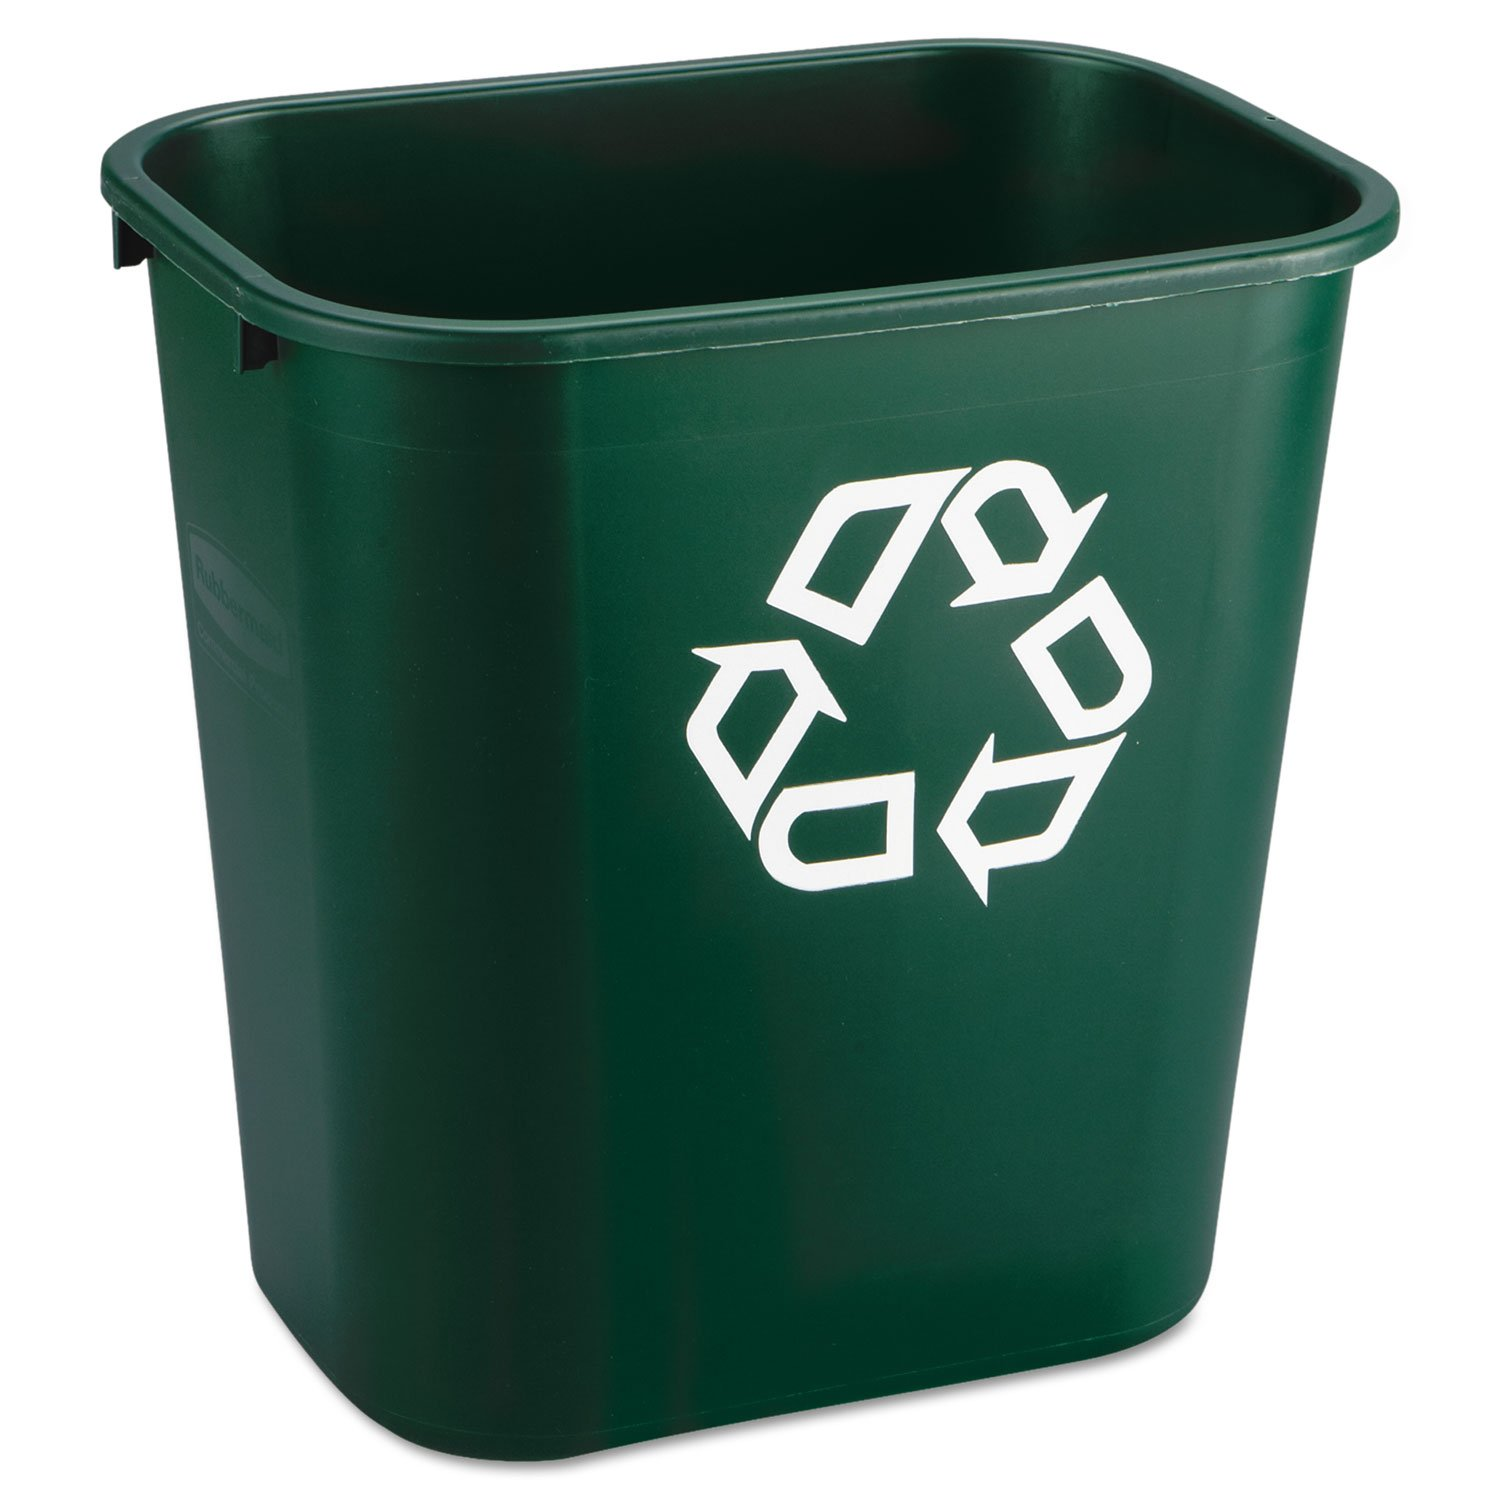 Deskside Paper Recycling Container, Rectangular, Plastic, 7 gal, Green